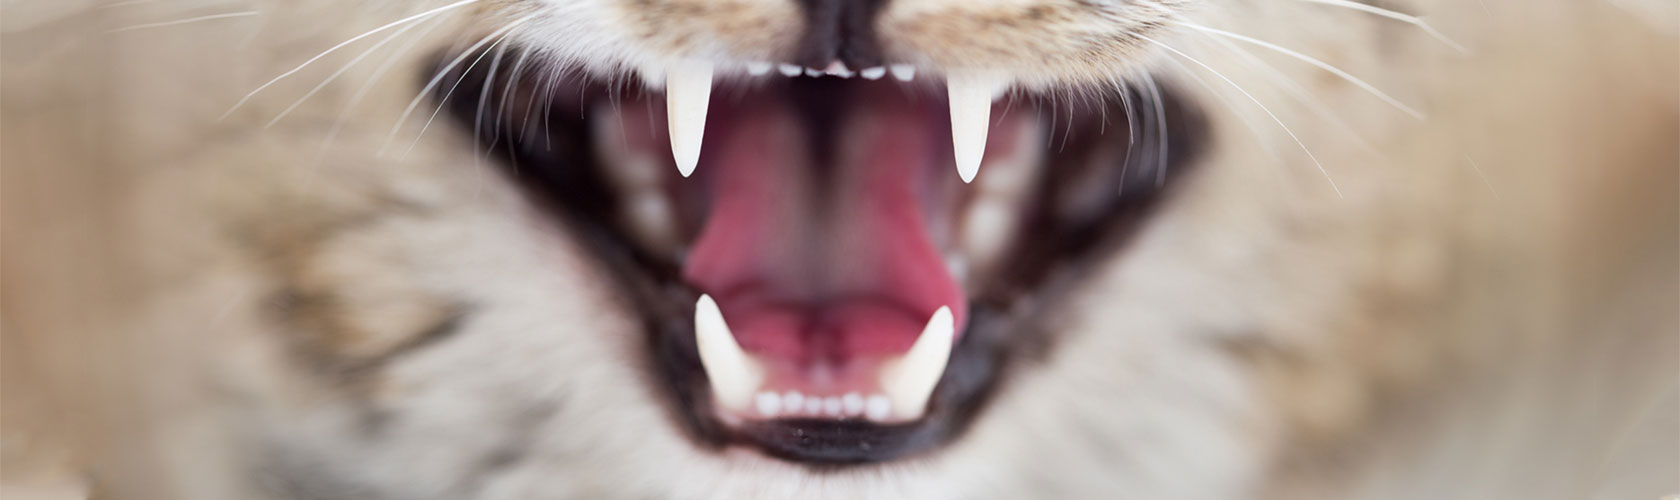 open cat's mouth showing teeth